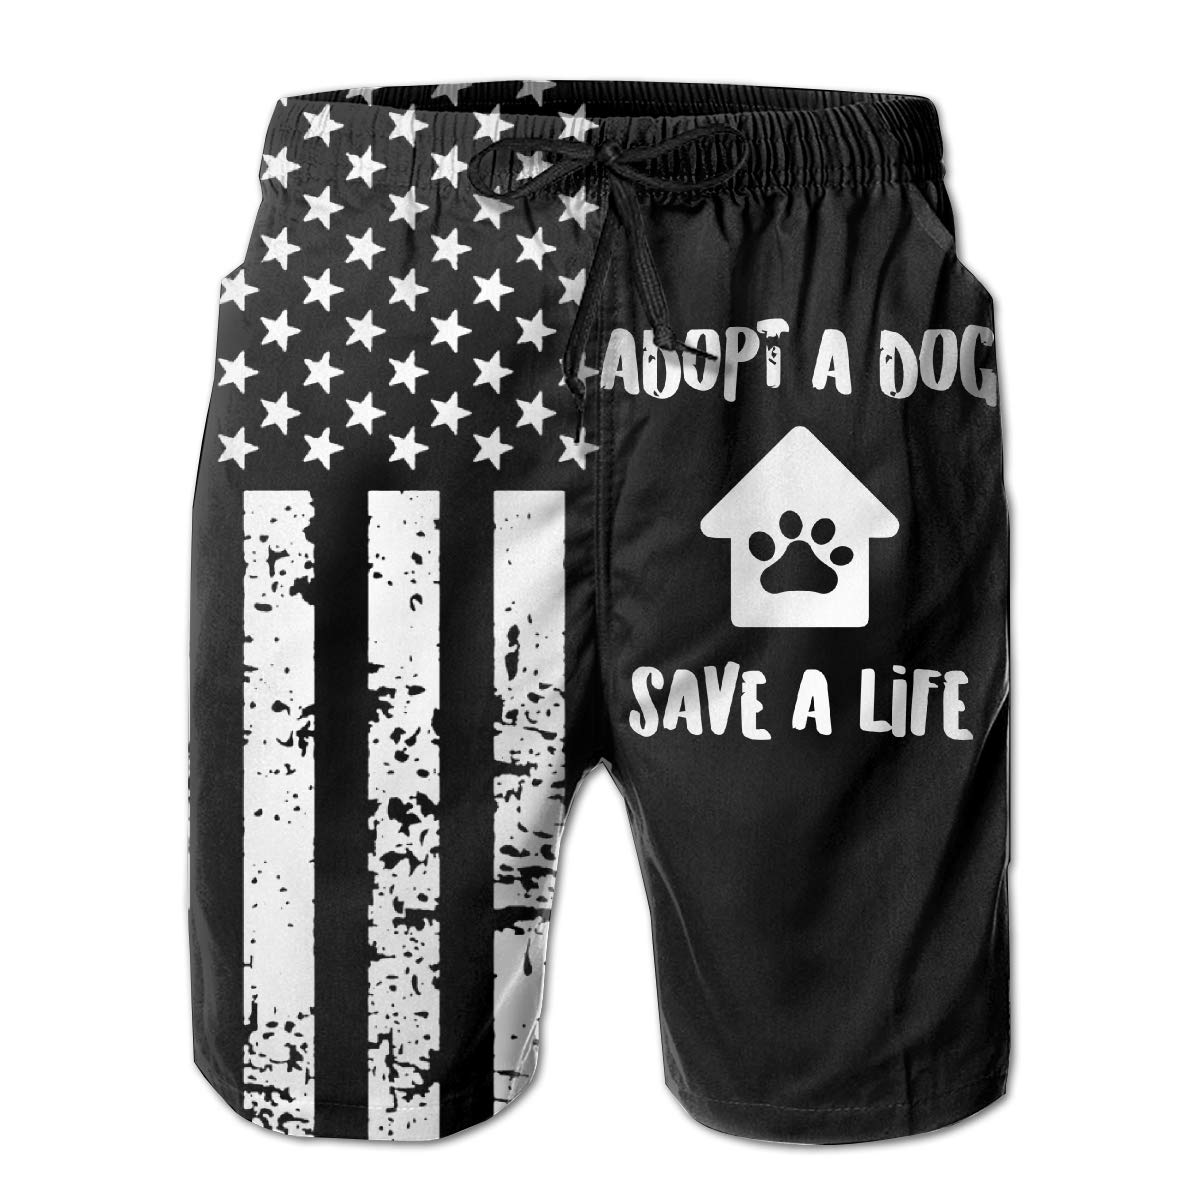 TBVS 79 Adopt A Dog Save A Life 3 Mens Summer Cool Hawaiian Shorts for Surf Sand and Fun